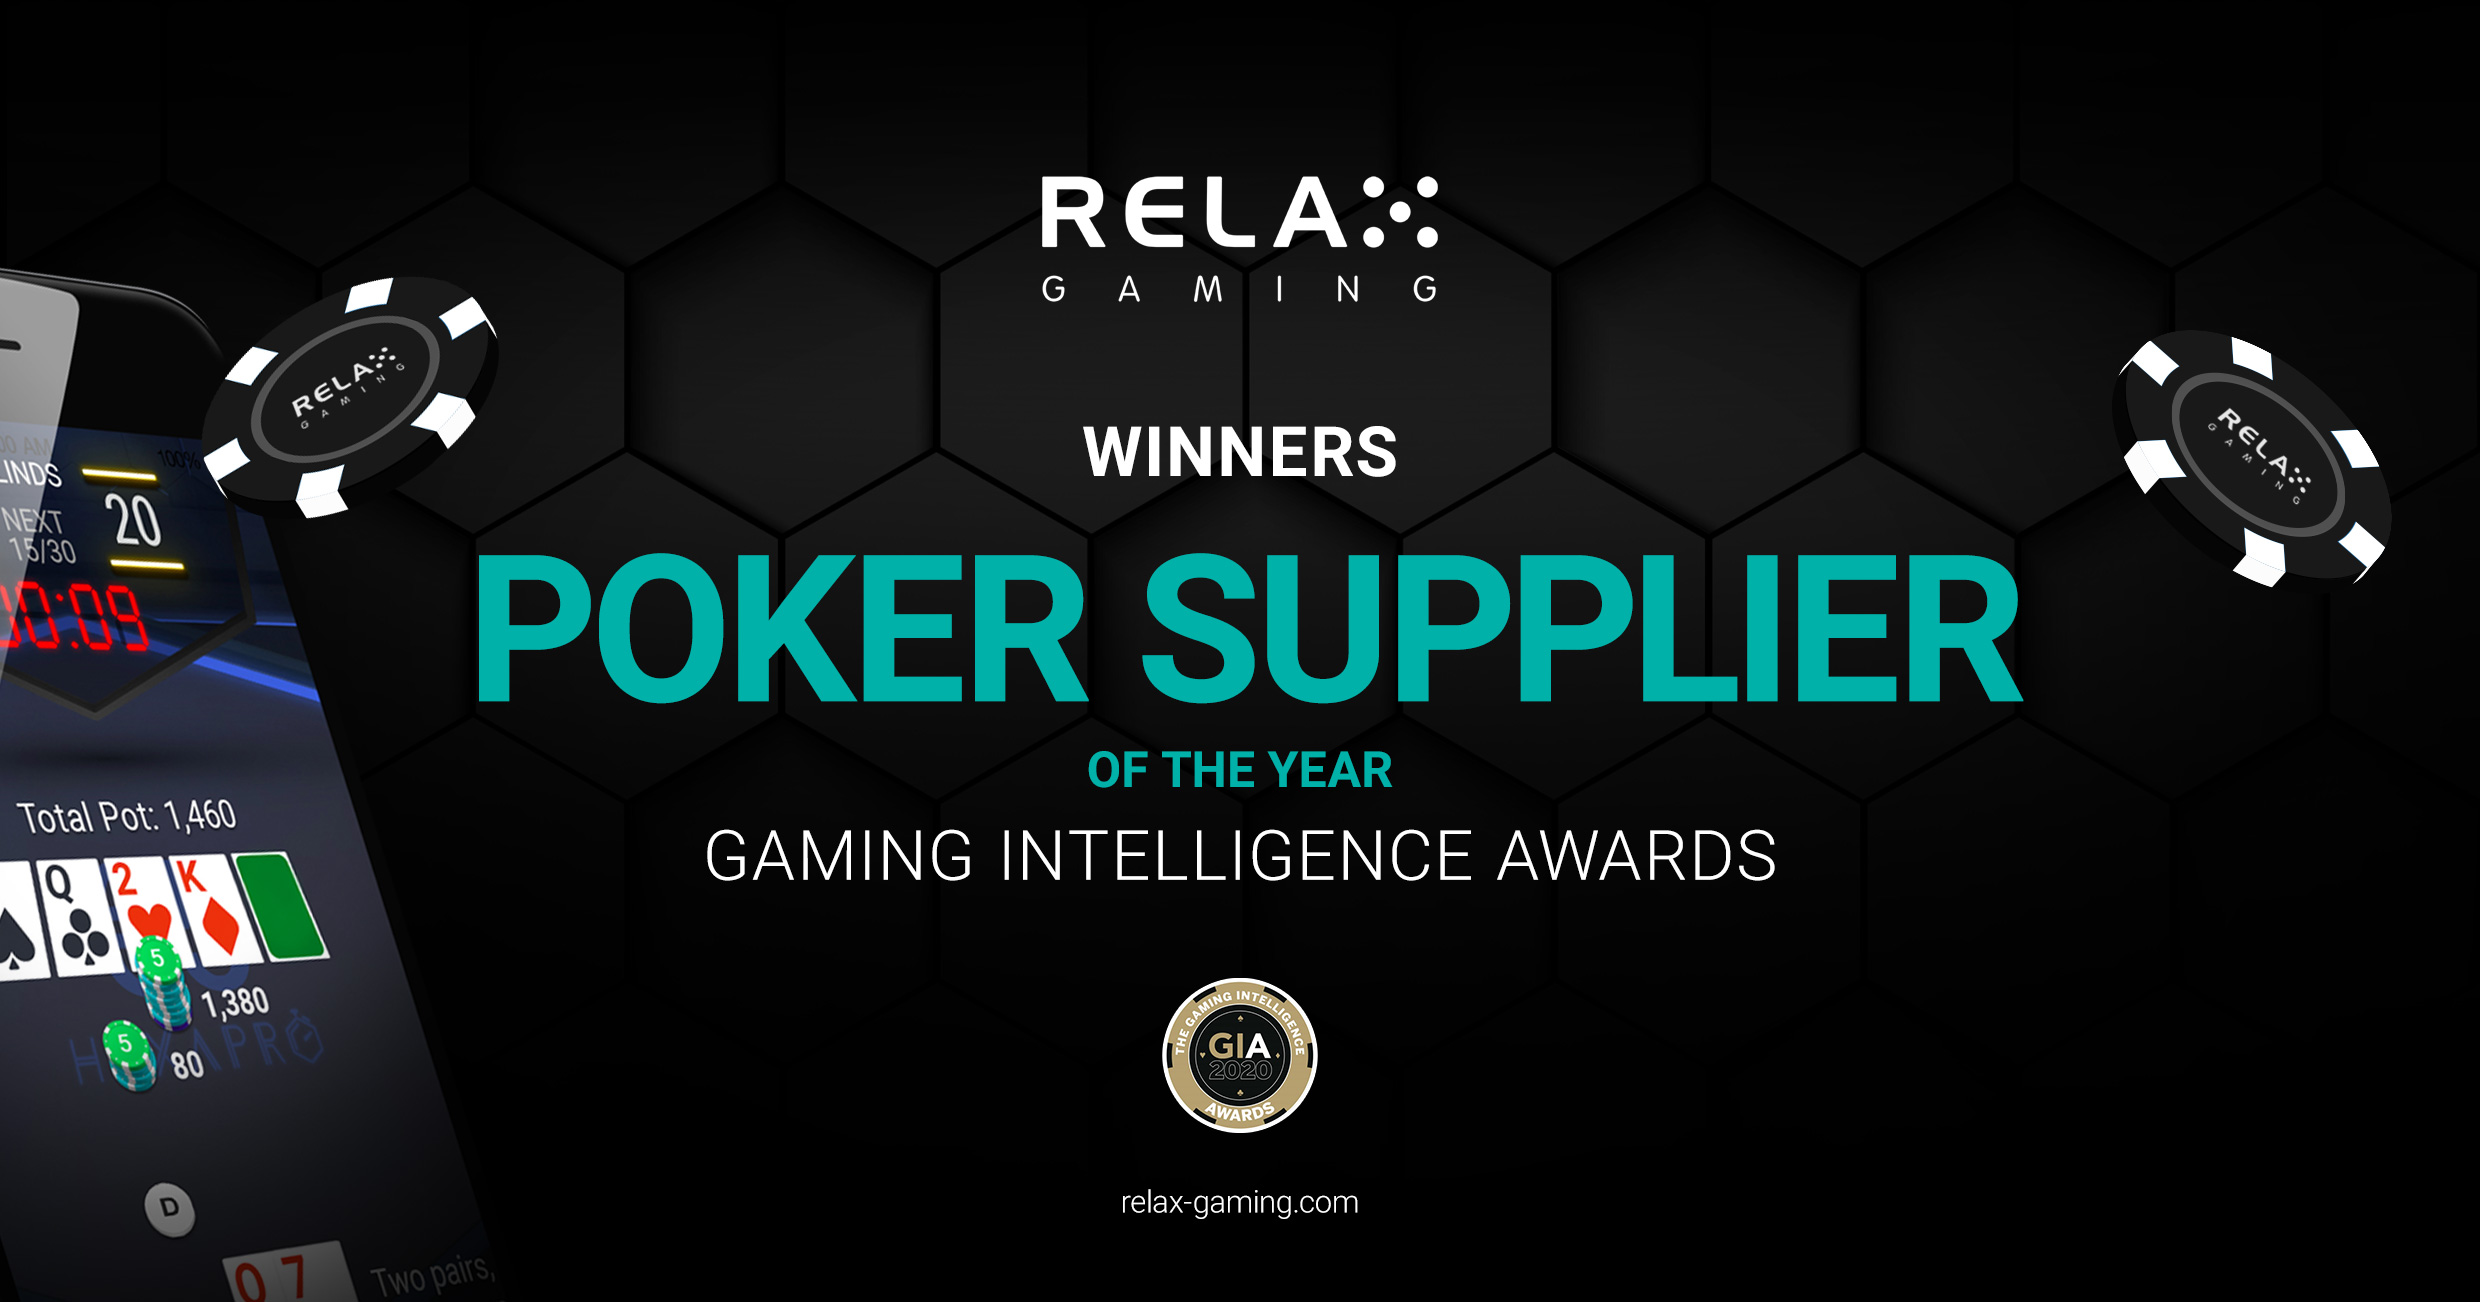 Relax Gaming crowned as Poker Supplier of the Year at Gaming Intelligence Awards